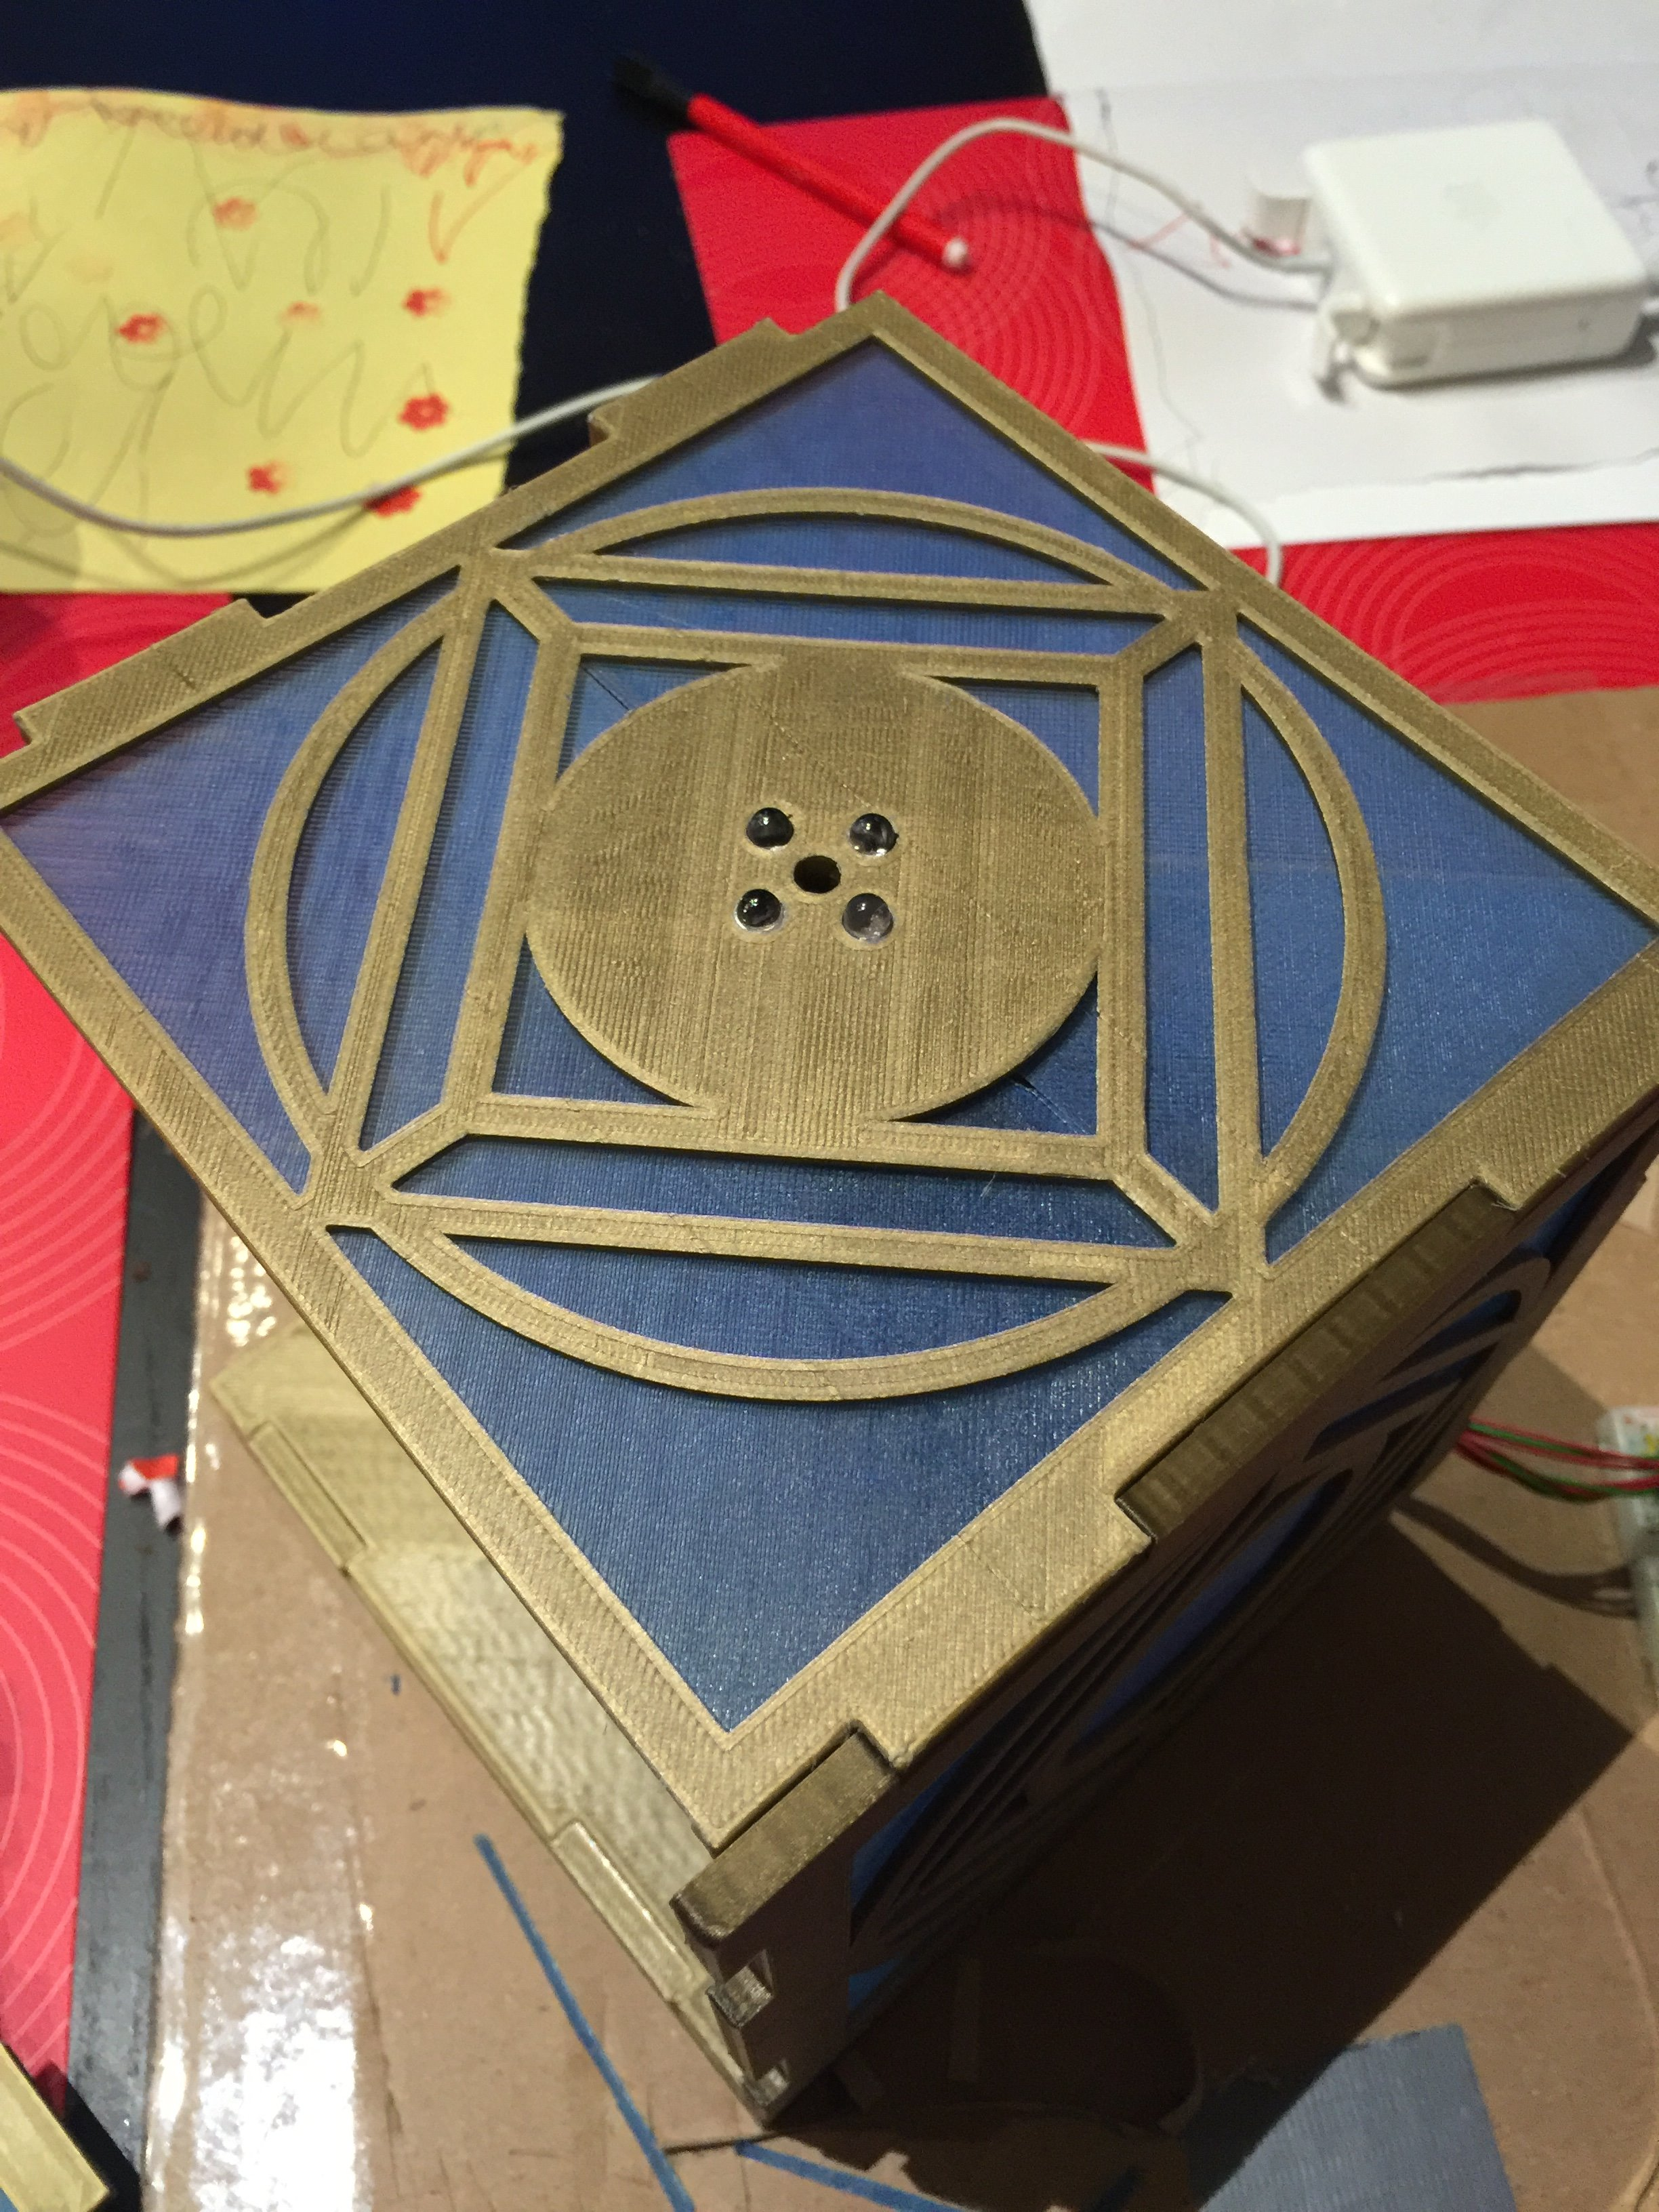 Picture of 4 Sides Assembled. the Just Press Fit Together